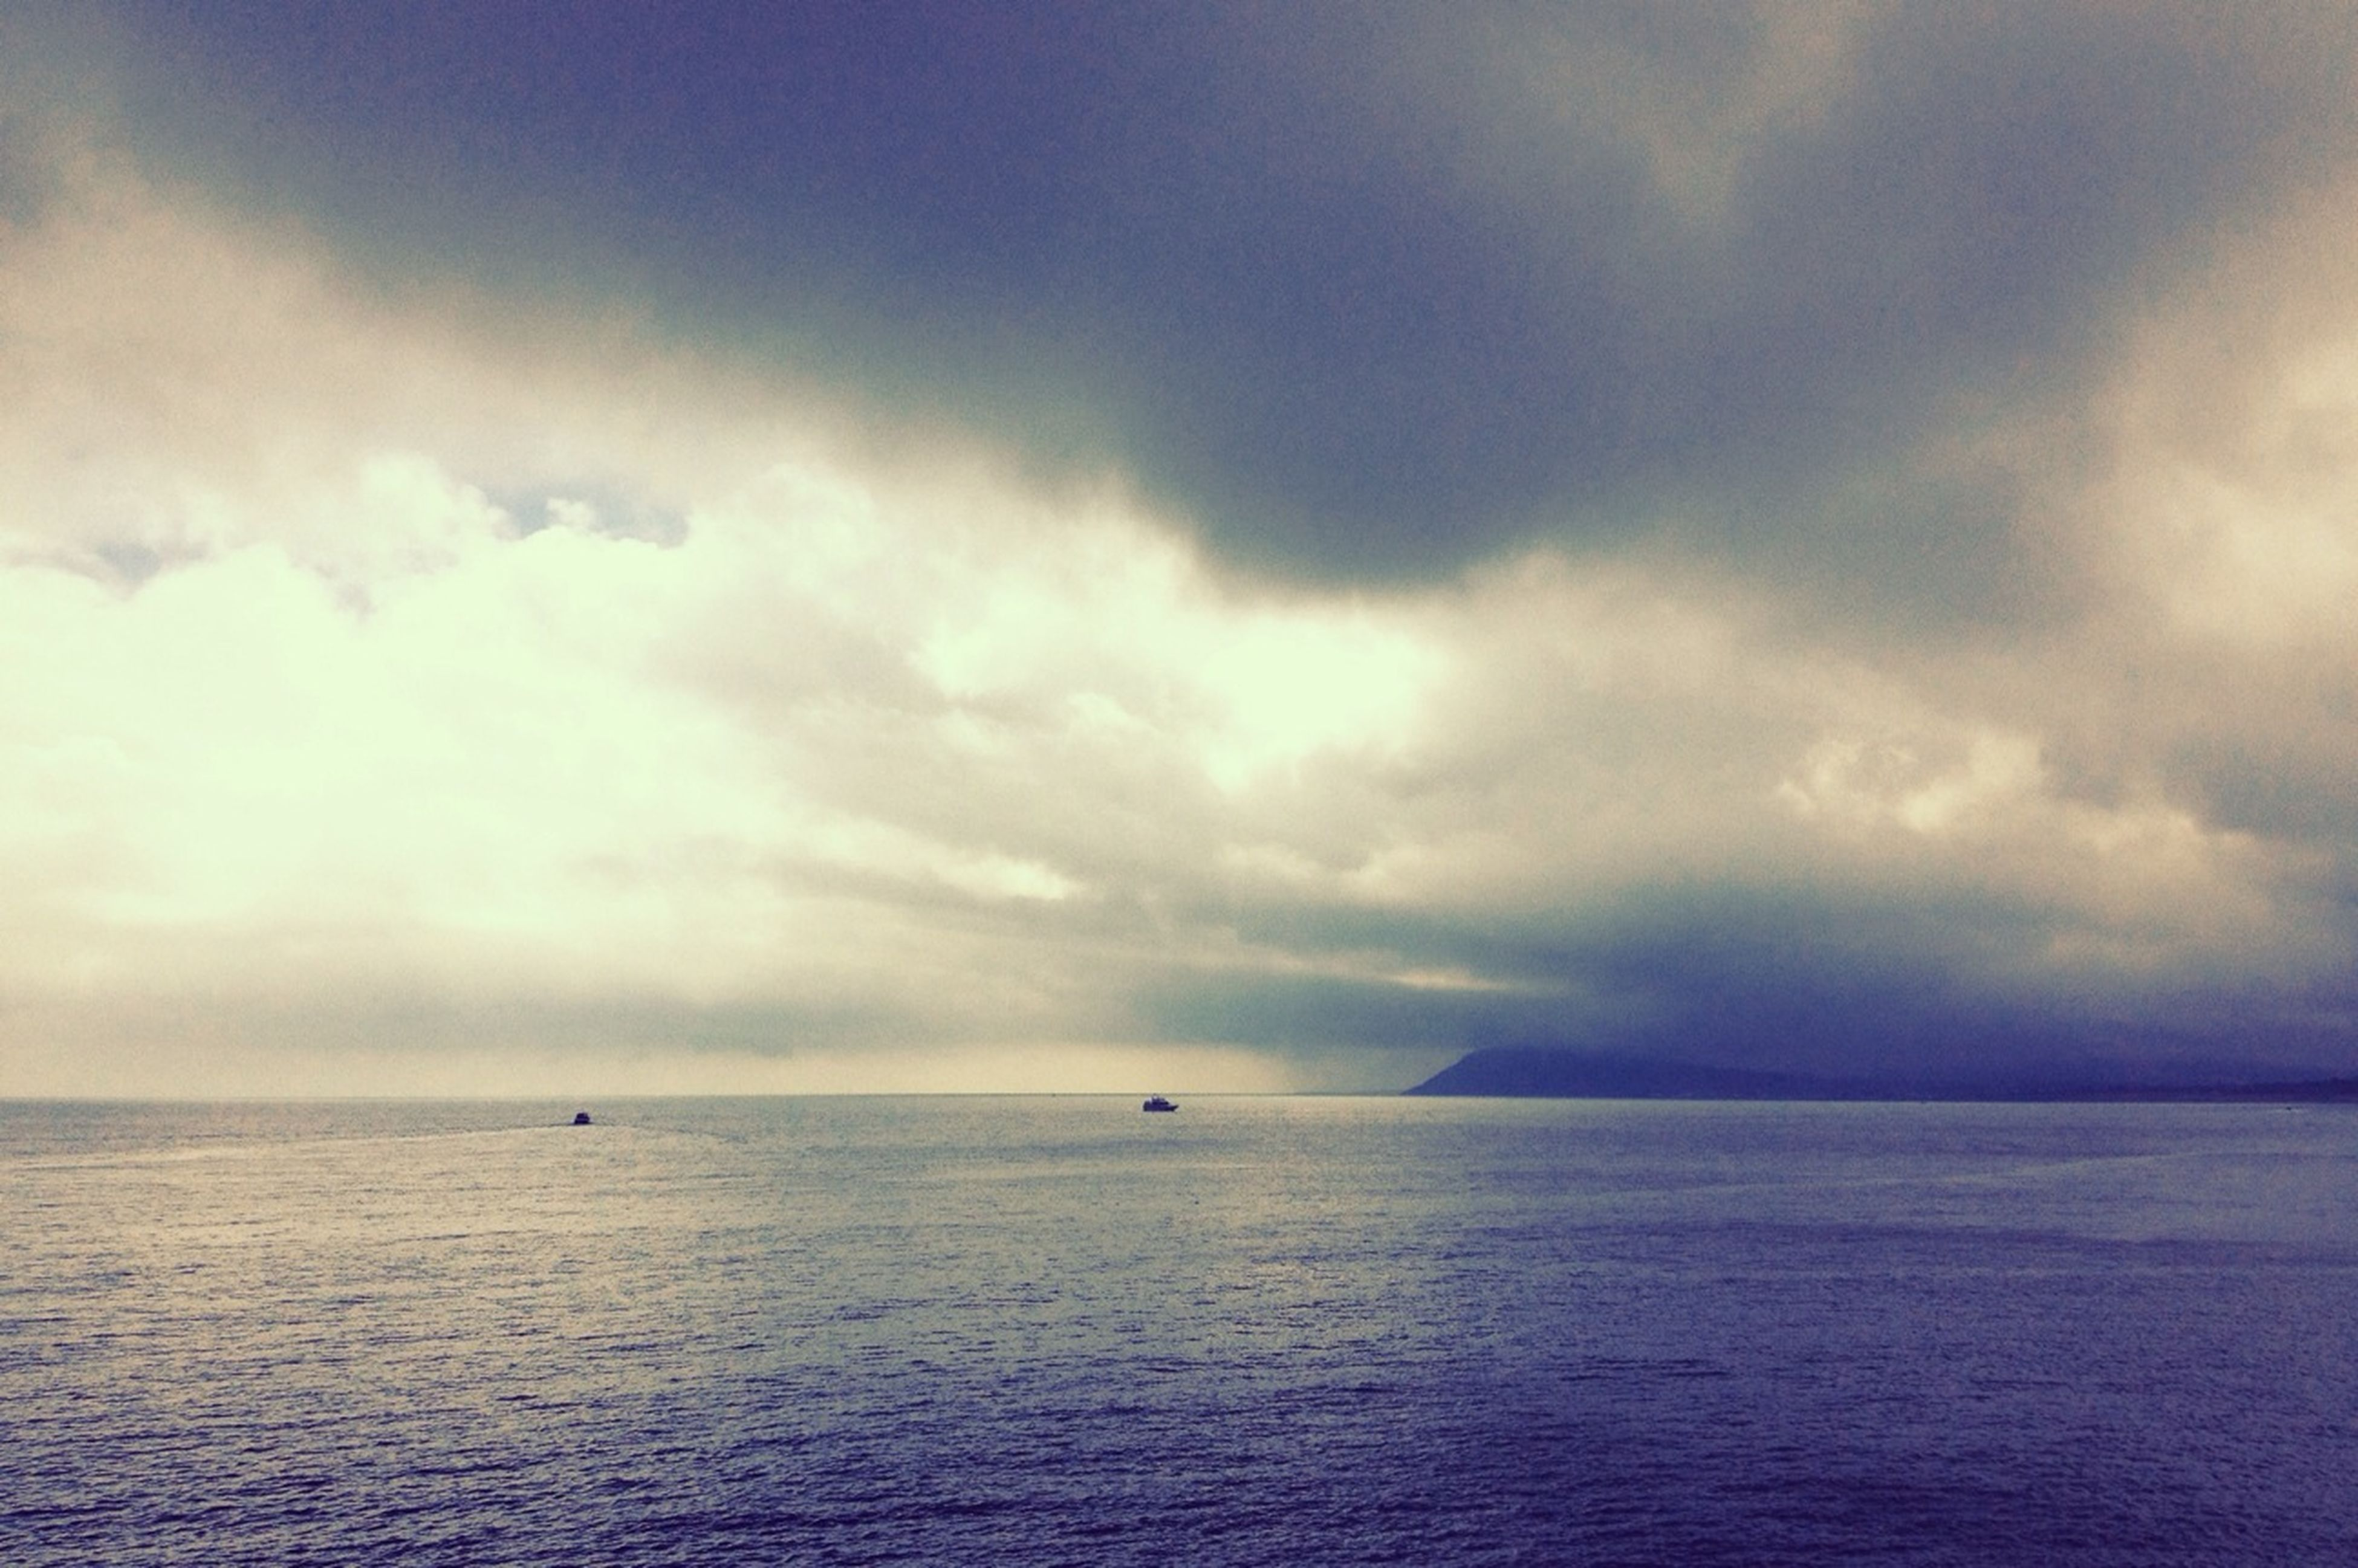 sea, sky, horizon over water, water, waterfront, scenics, tranquil scene, tranquility, cloud - sky, beauty in nature, cloudy, nature, cloud, idyllic, seascape, weather, overcast, outdoors, dusk, rippled